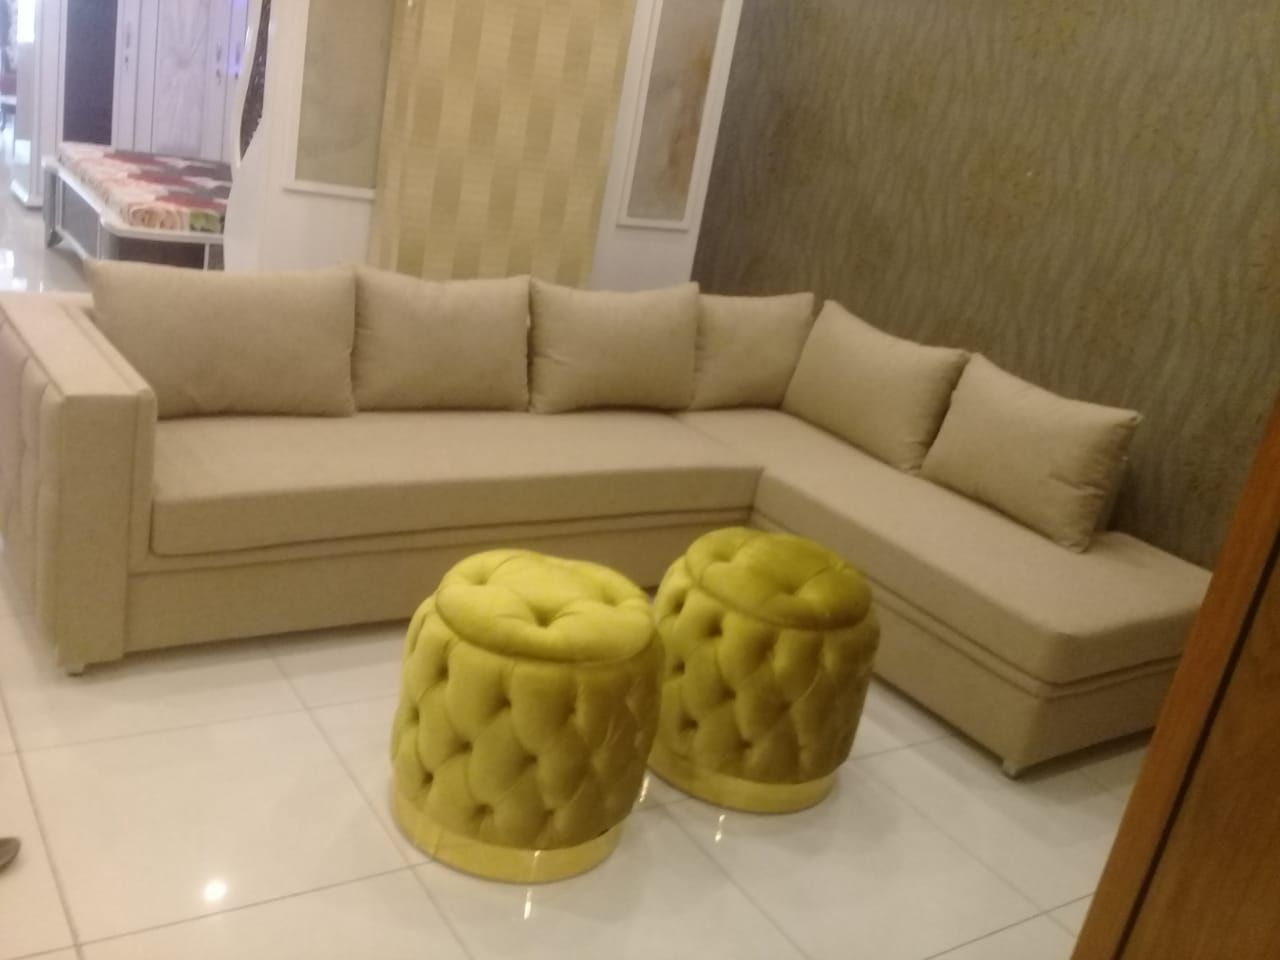 We are the distributor of happiness with furniture also iwood iwoodf on pinterest rh